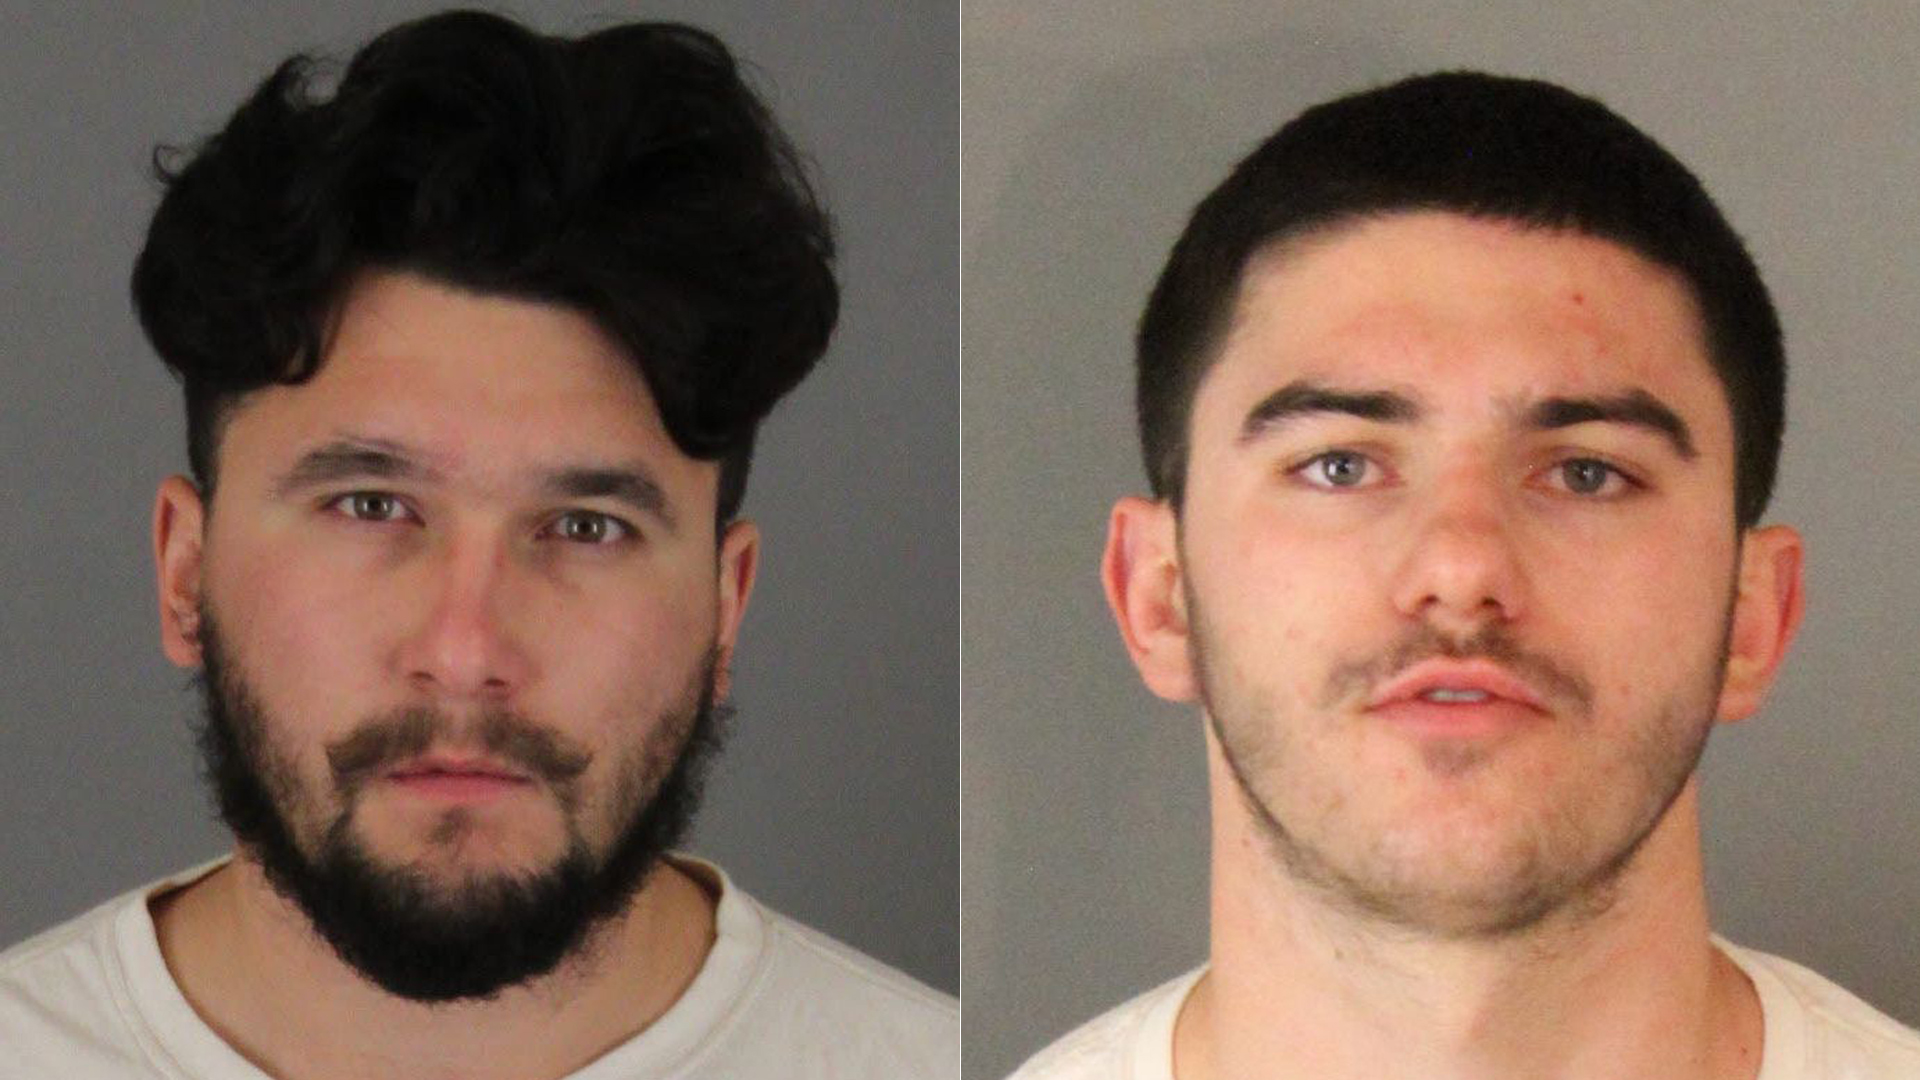 Gary Anthony Shover, left, and Owen Skyler Shover are seen in photos released by the Riverside County Sheriff's Department on Feb. 12, 2019.